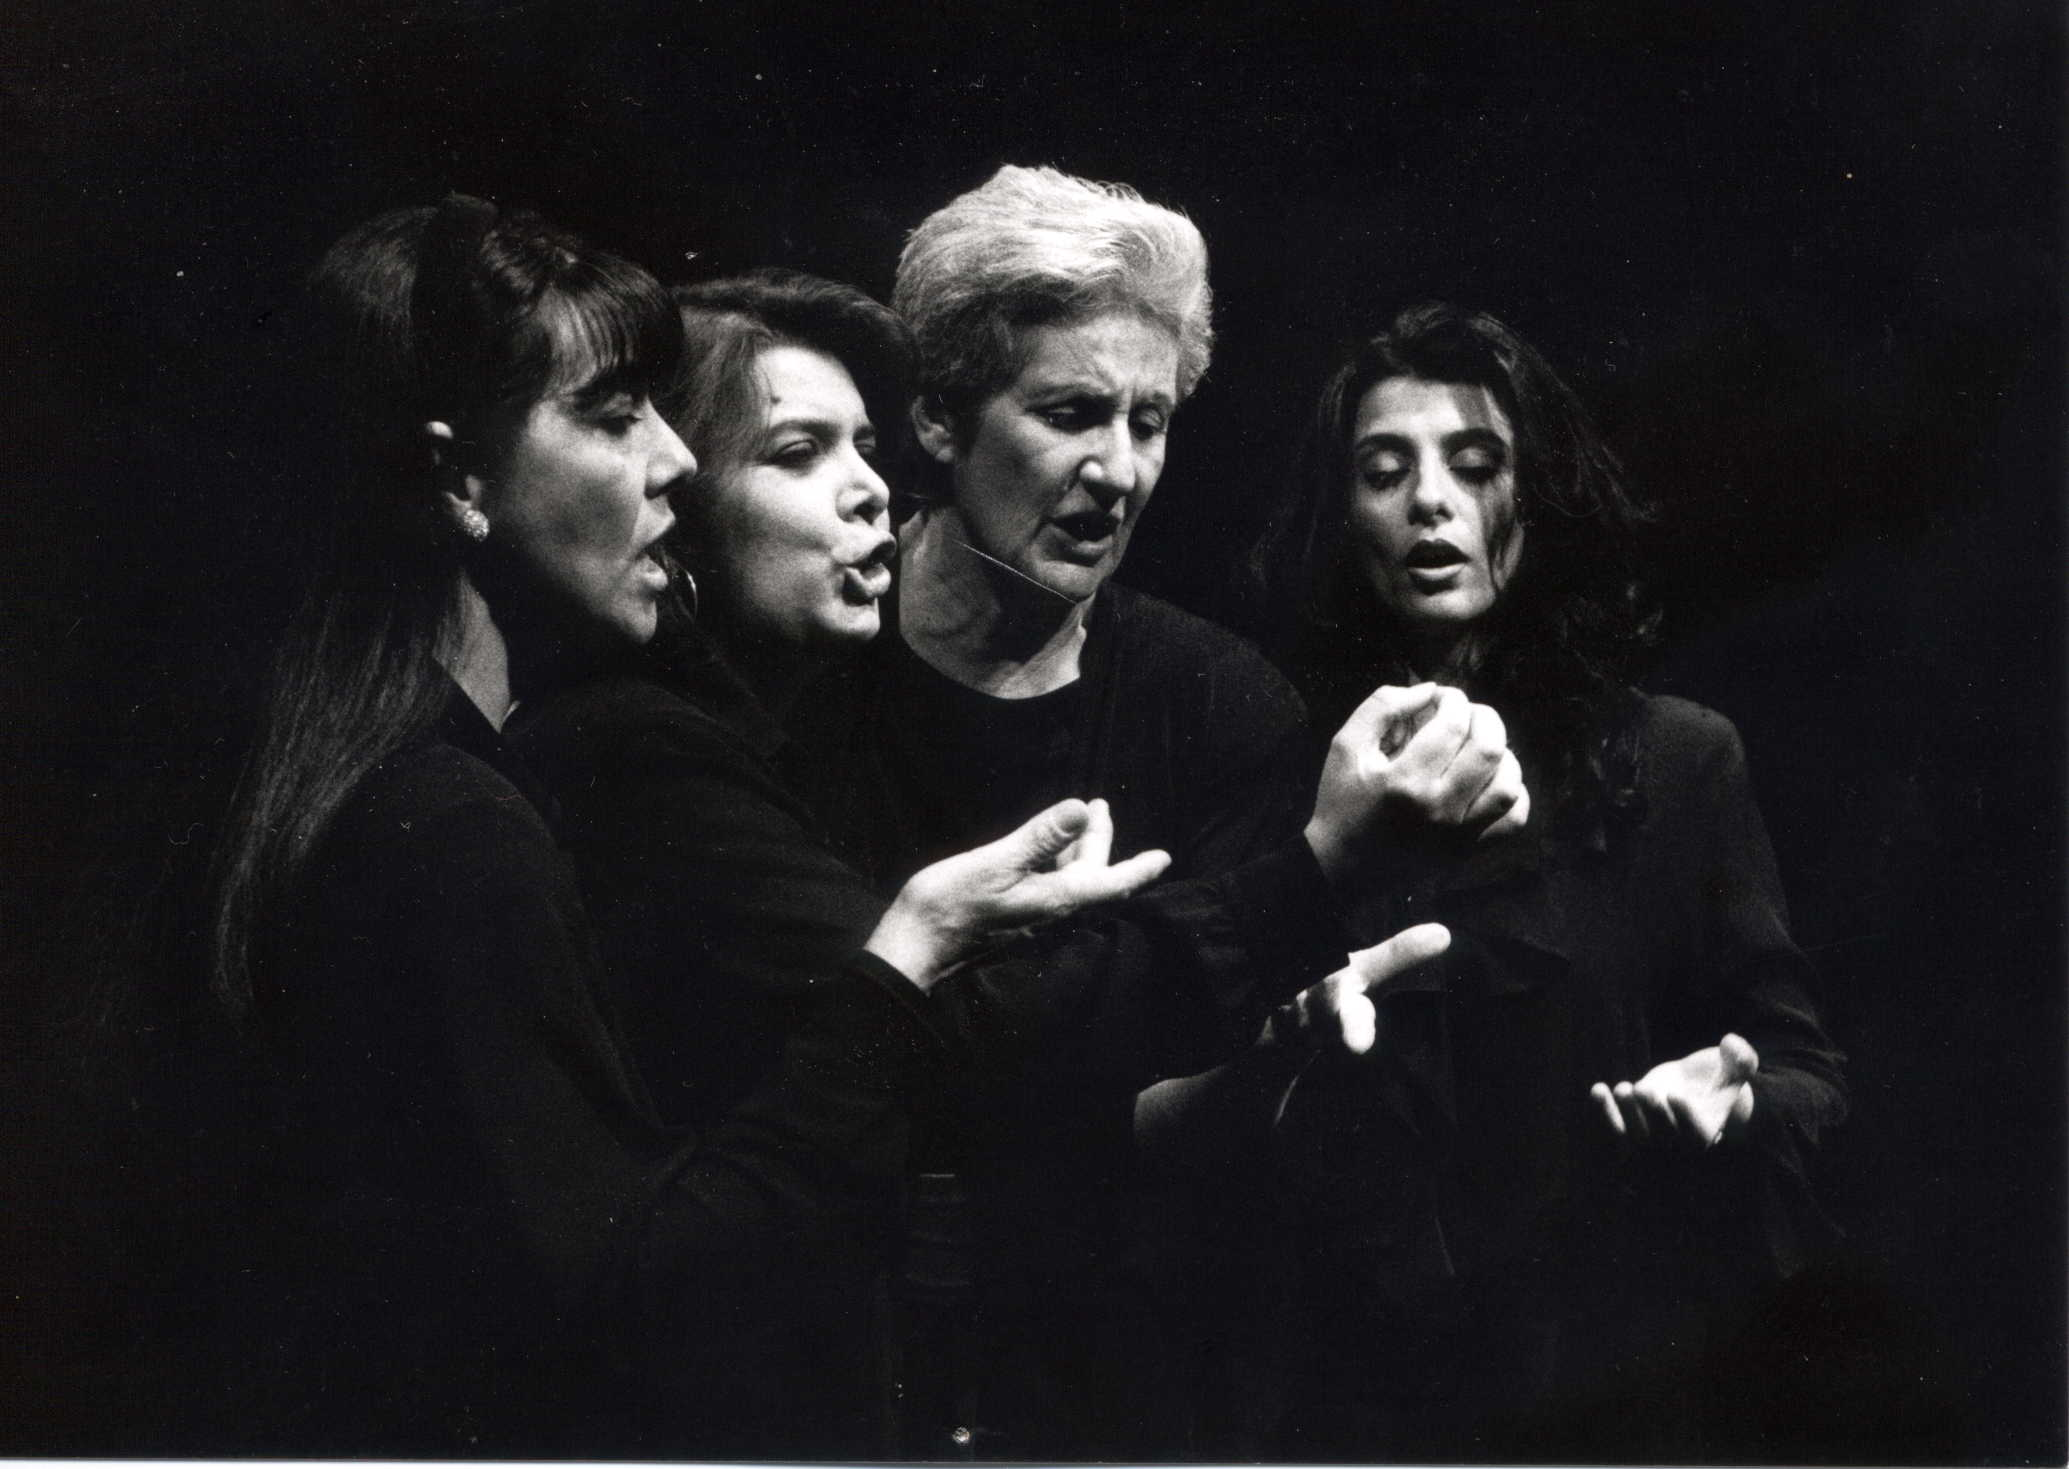 Quartetto Giovanna Marini 2